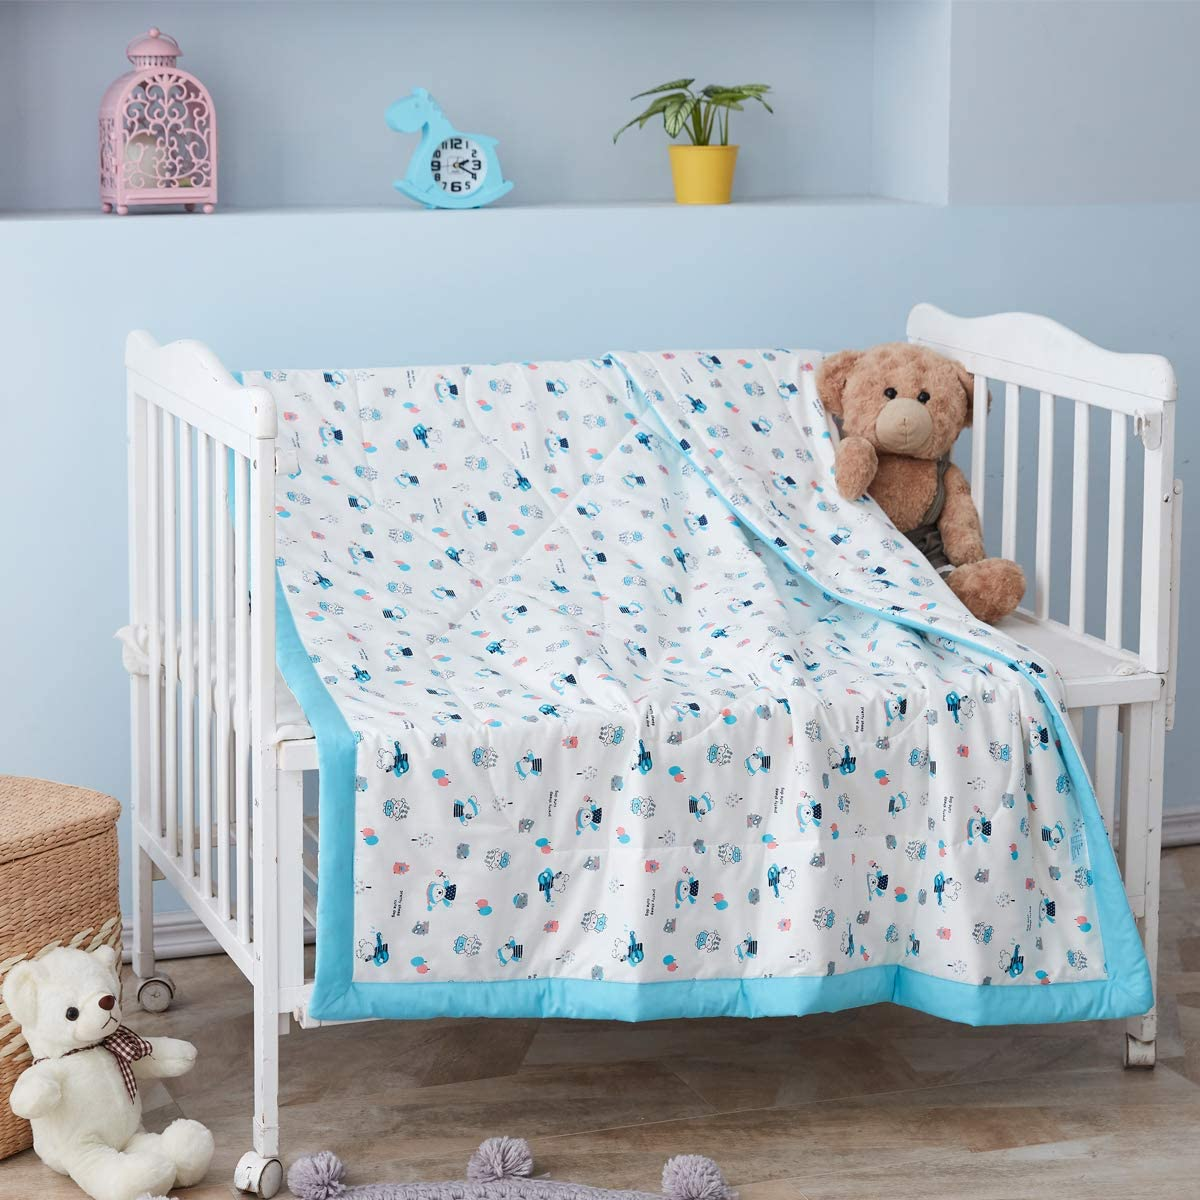 Soft Cot Comforter Crib Baby Quilts for Boys and Girls 36x48 Knitted Cotton 1 Pack Baby Blanket Cradle Quilt Nursery Bed Throw Blanket Bed Cover Lightweight Blanket Rainbow UOMNY Baby Blanket